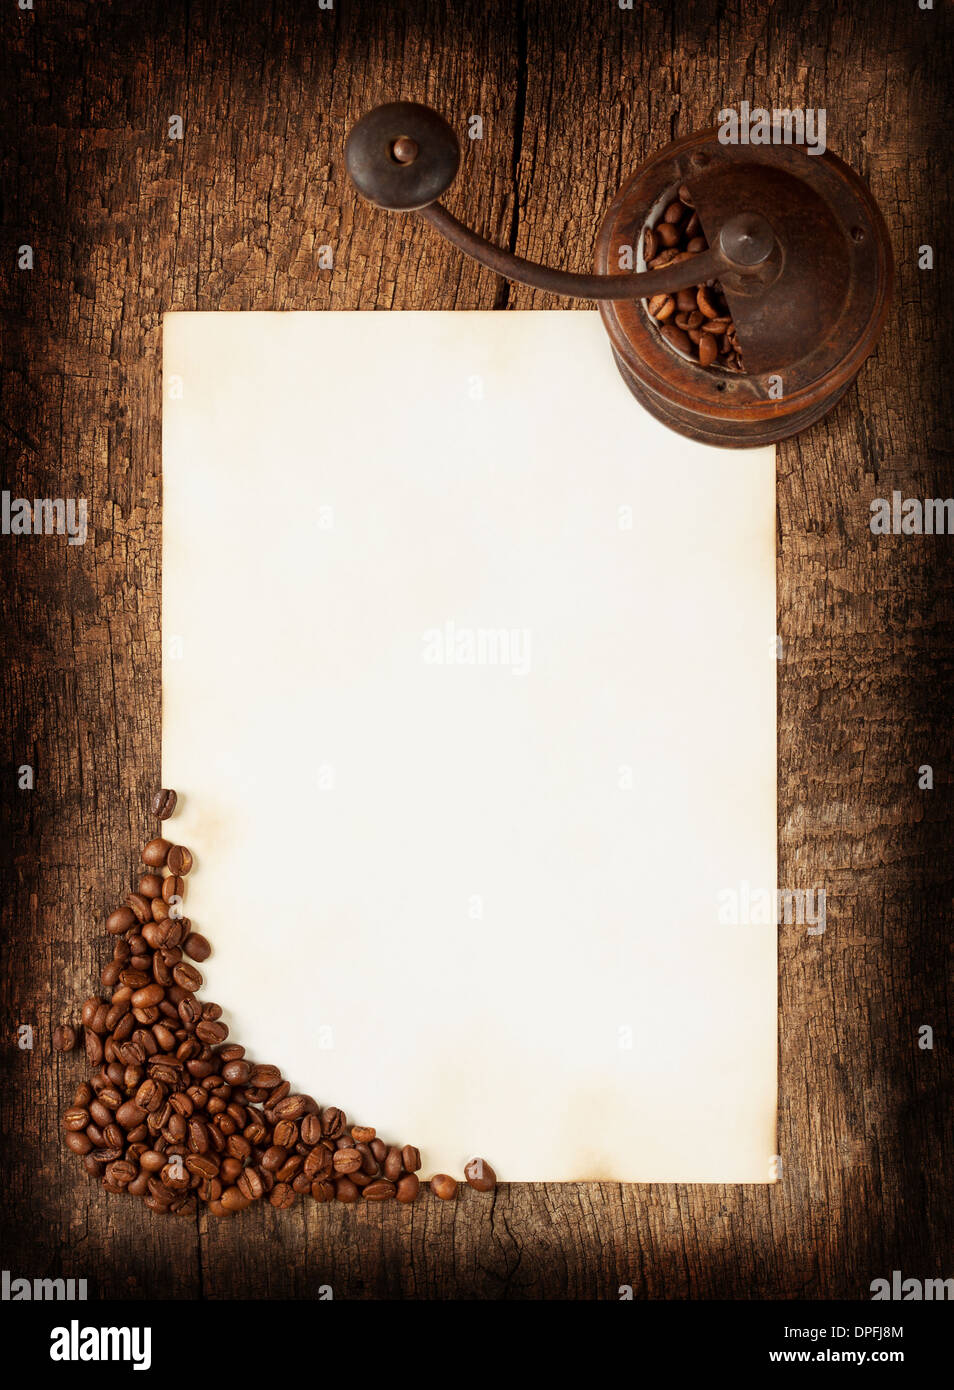 Old burnt sheet with a coffee grinder and coffee beans - Stock Image